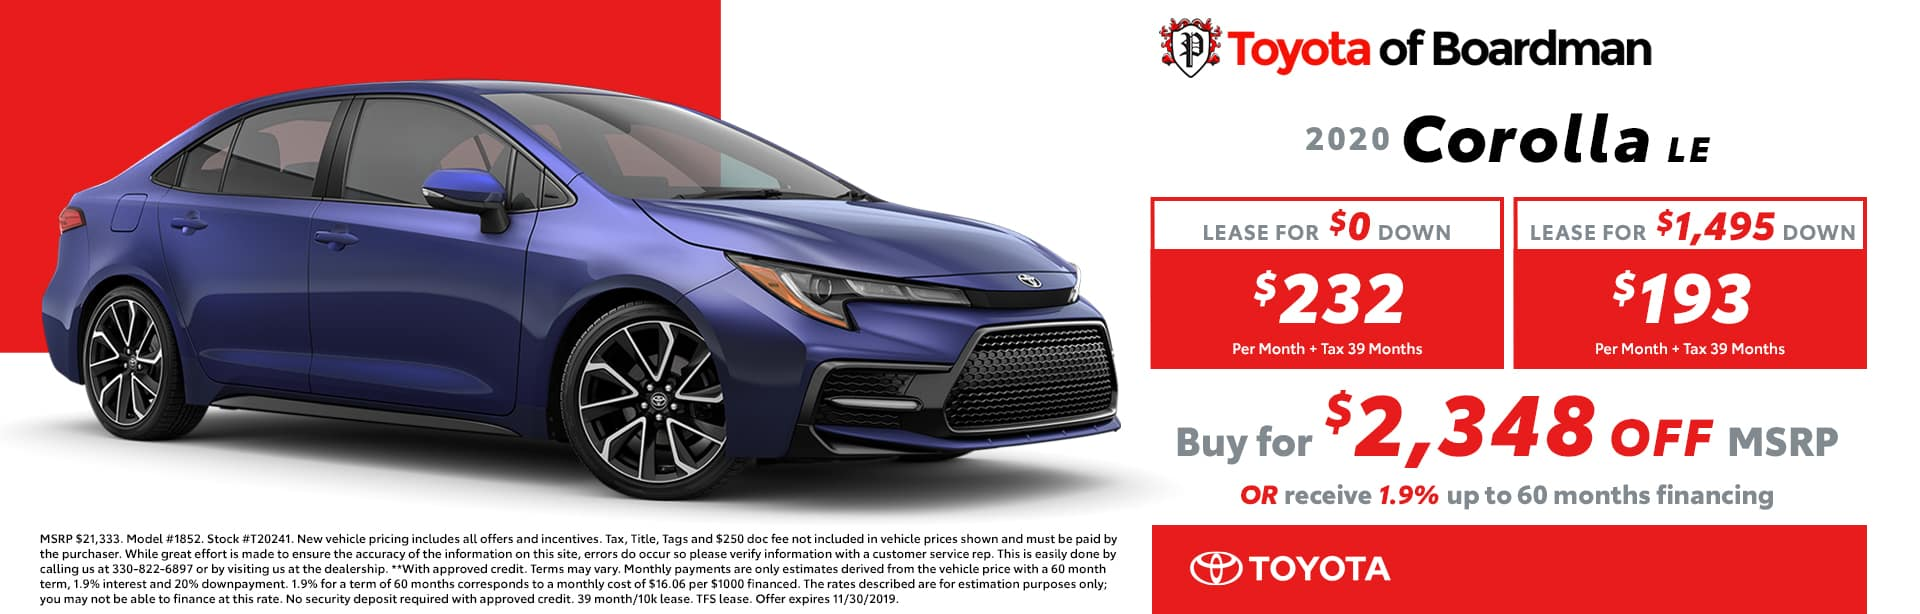 November special on the Toyota Corolla